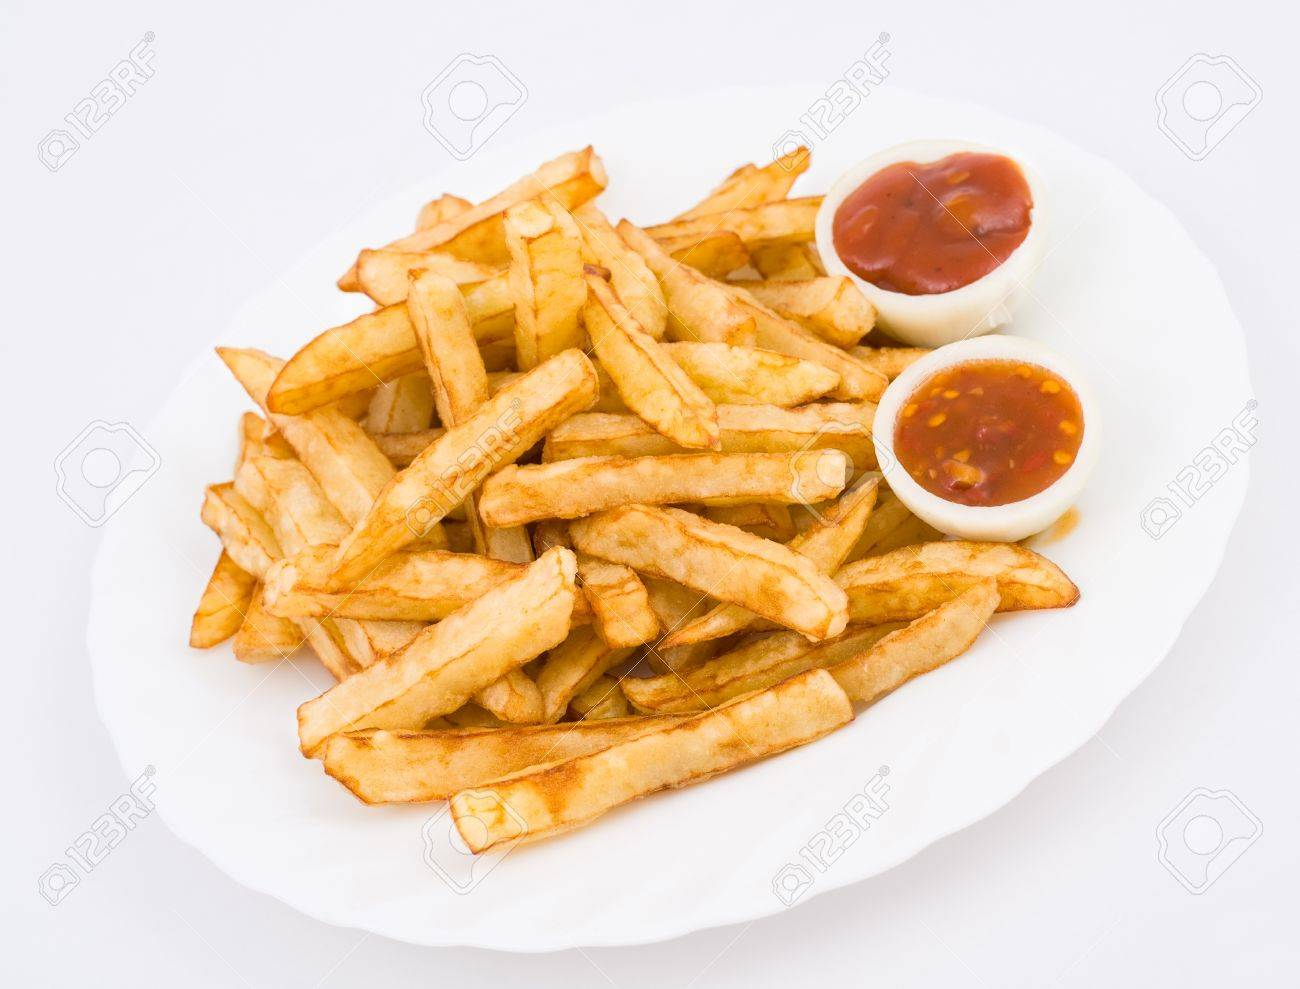 French Fried Potatoes Served With Ketchup In Onion Halves Stock Photo 12540670